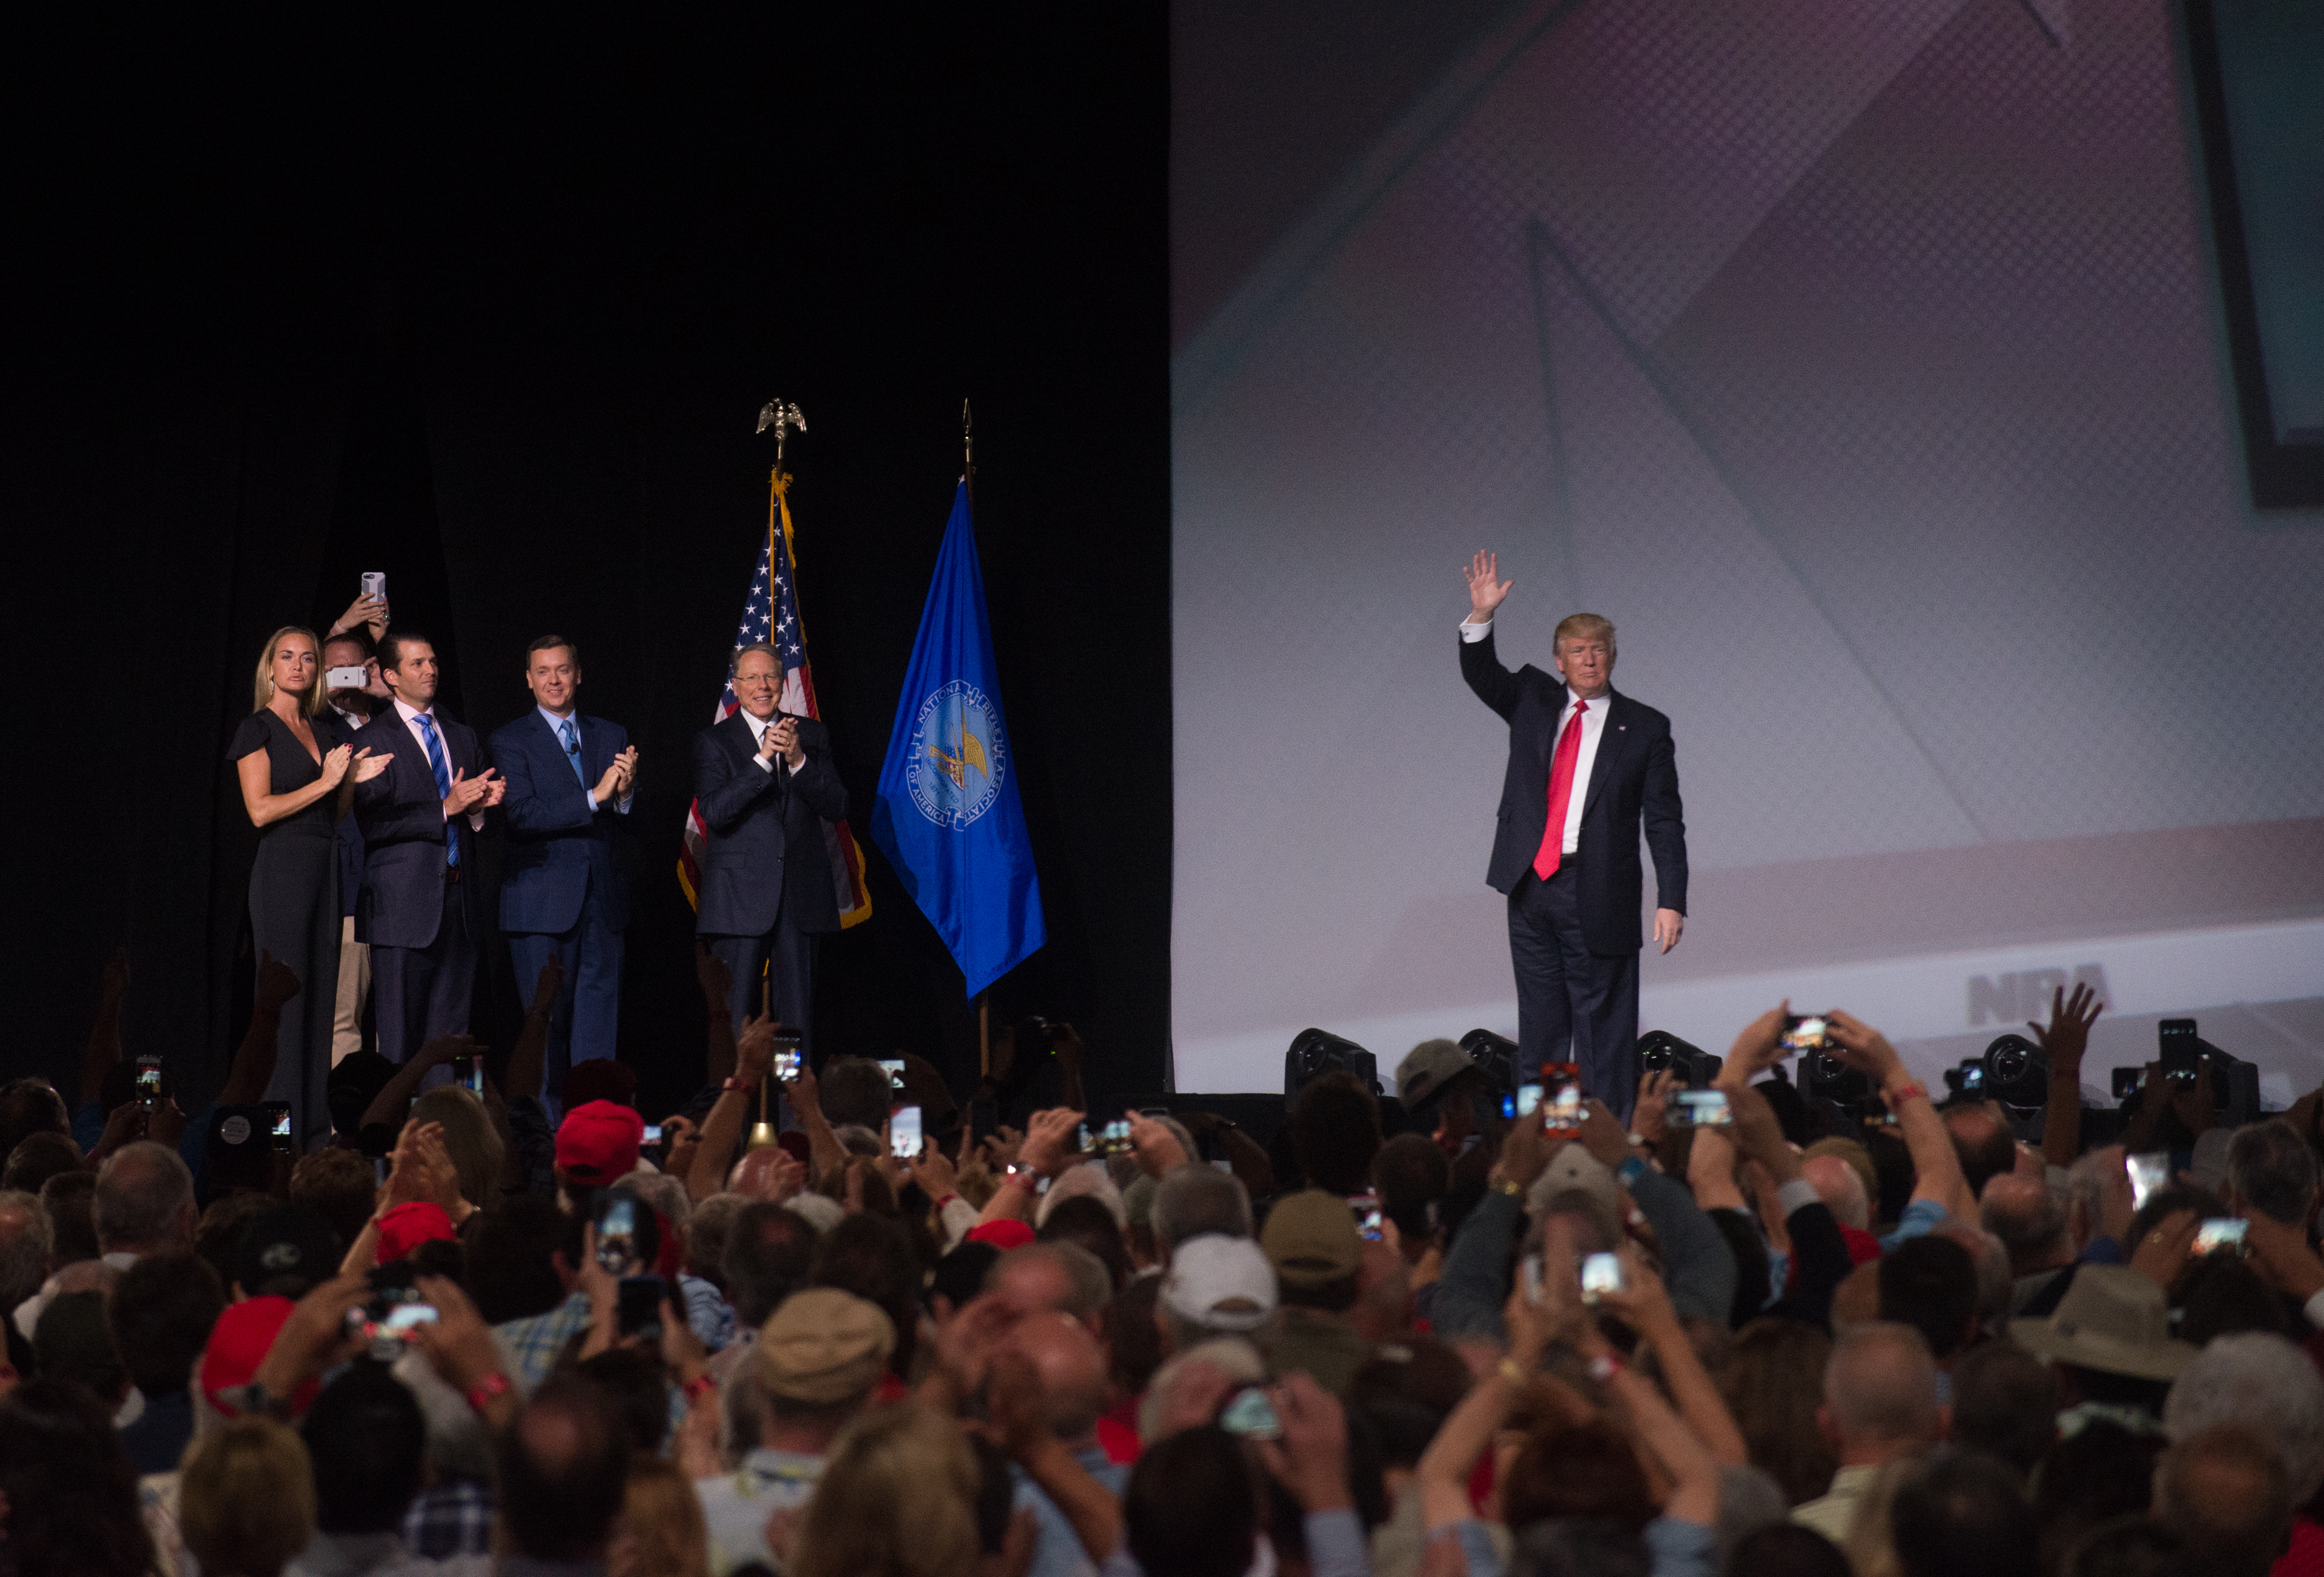 US President Donald Trump arrives to address the National Rifle Association (NRA) Leadership Forum in Atlanta, Georgia on April 28, 2017. For the first time in 30 years a sitting President speaks to the National Rifle Association annual meeting. (Photo by Zach D Roberts/NurPhoto via Getty Images)